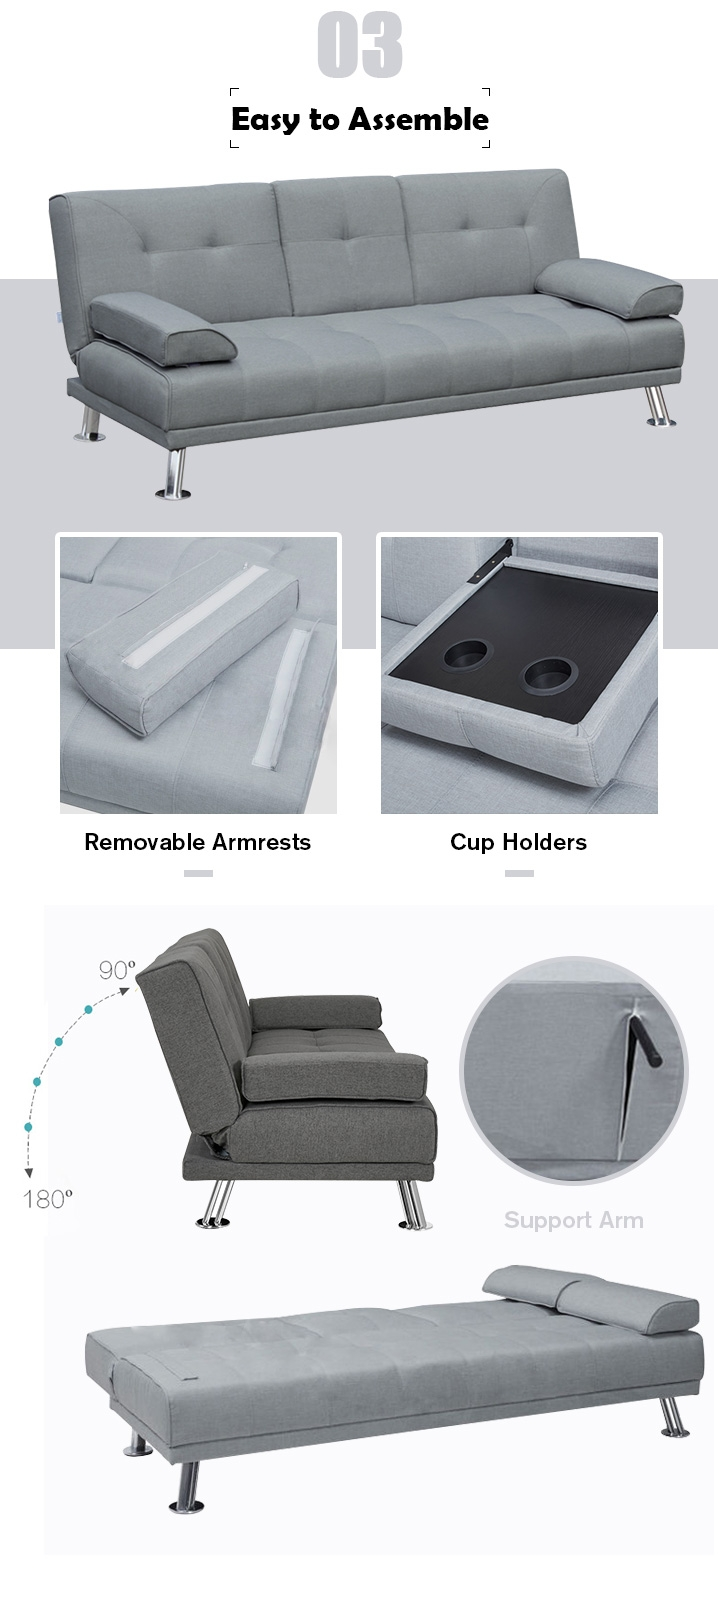 BetaLife Fold Out Sofabed with Cup Holders